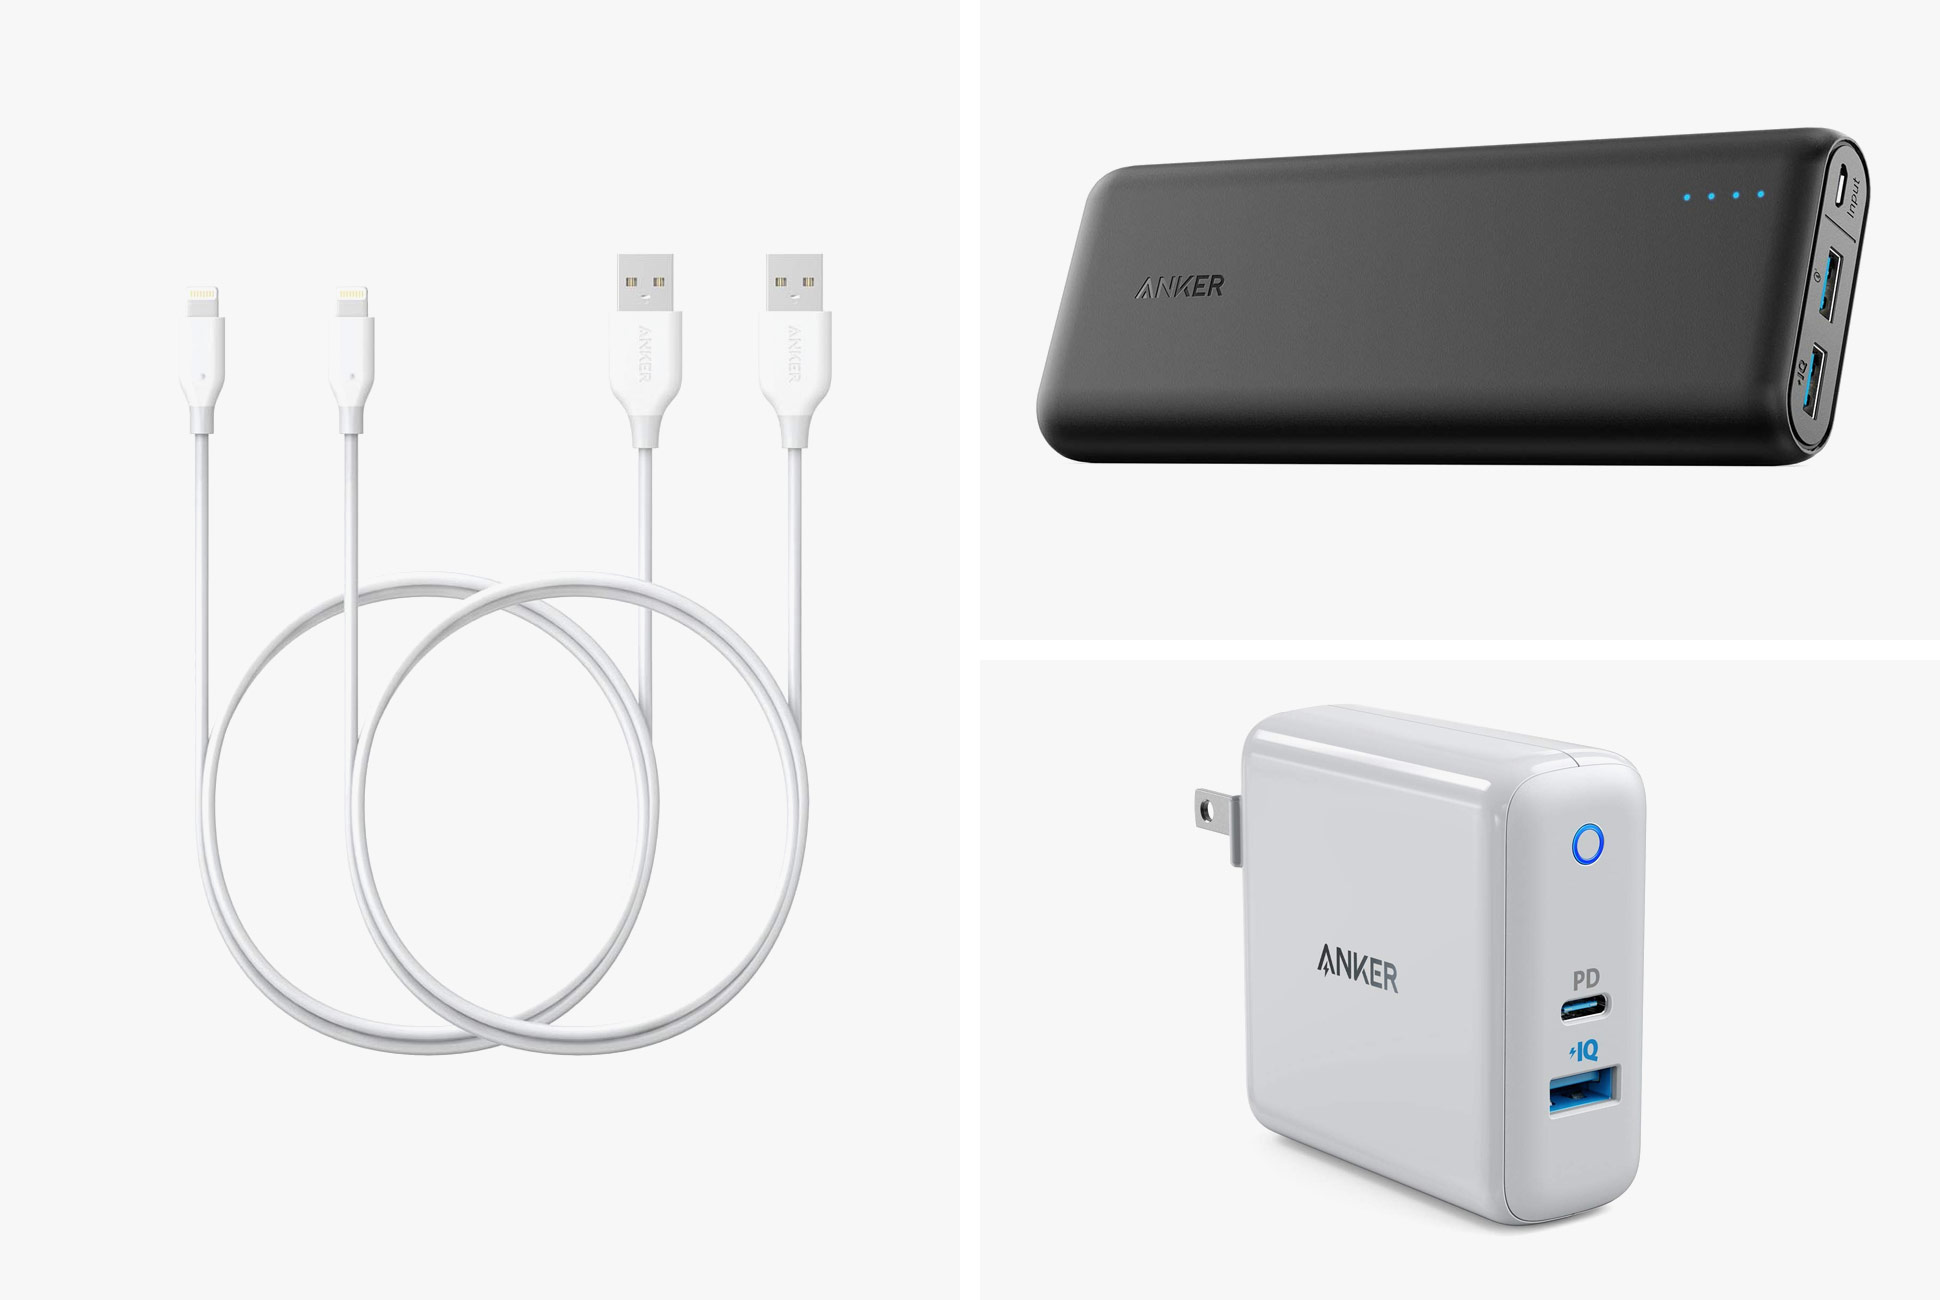 Earnest Iphone 6 Cell Phones & Accessories Plus Box Accessories Earpods Charger Lightening Cable Aromatic Flavor Other Cell Phone Accessories